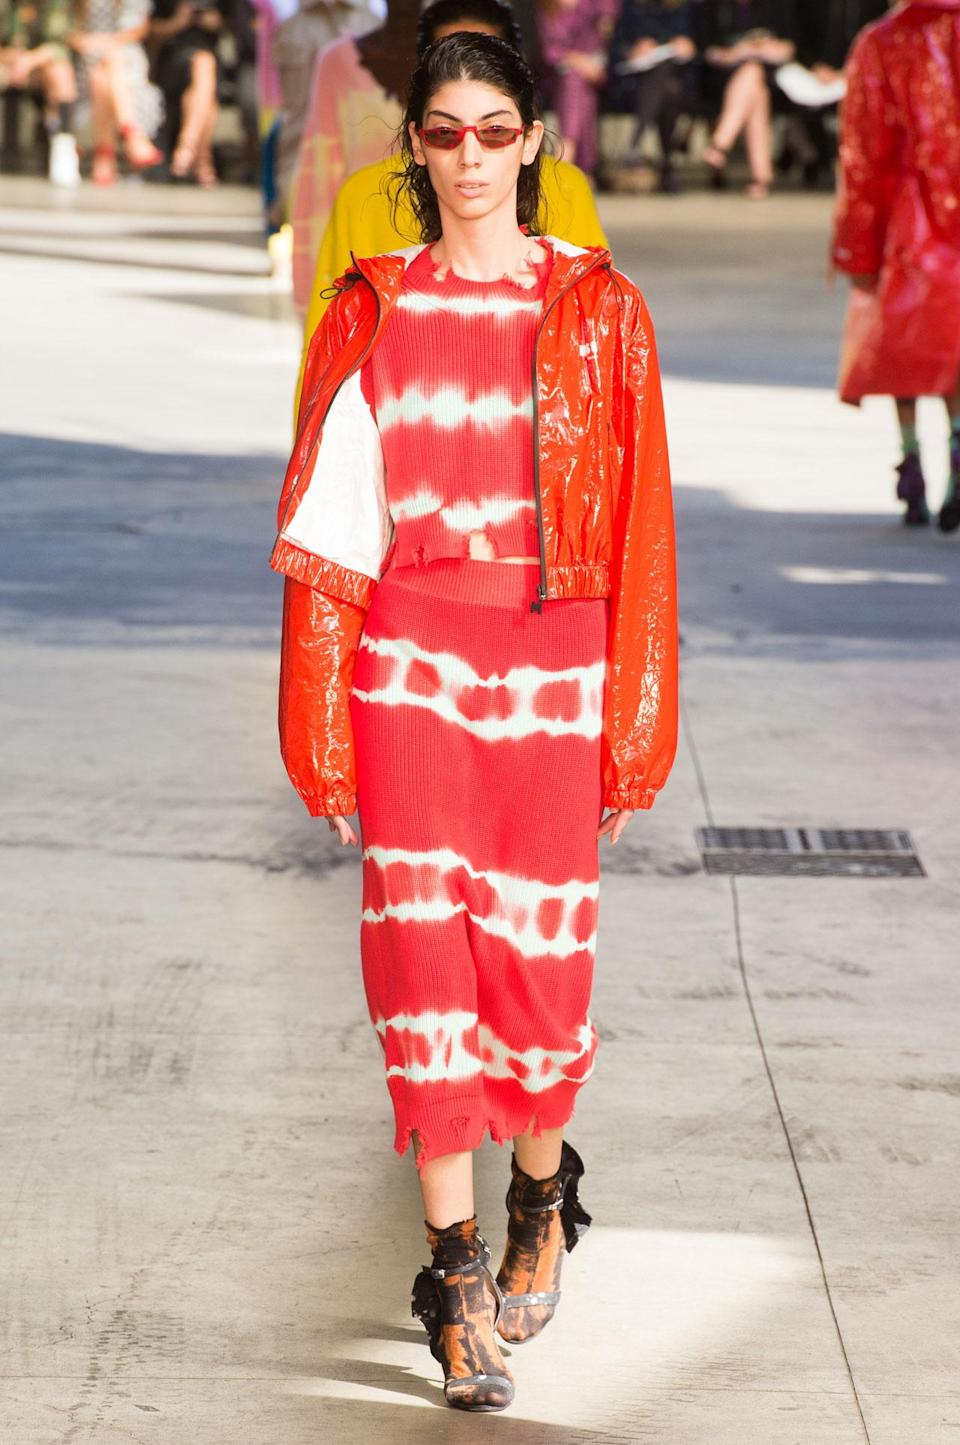 <p>Bright orange tie dye dress and patent leather jacket from the SS18 MSGM collection. (Photo: ImaxTree) </p>